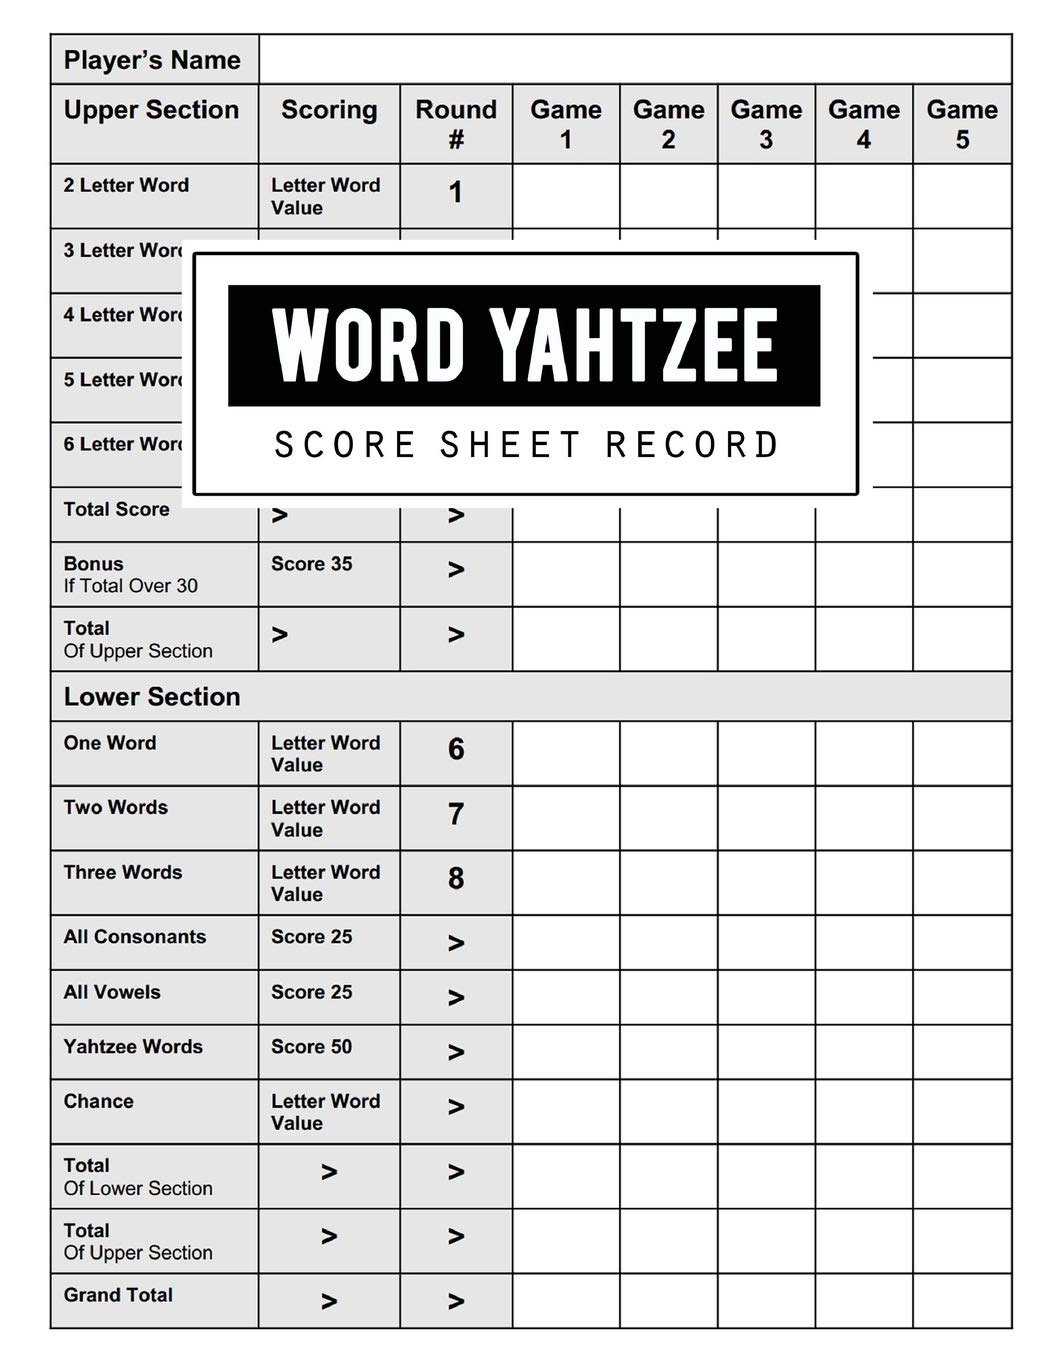 photo about Yahtzee Printable Score Sheets named Term Yahtzee Ranking Background: Term Yahtzee Sport Historical past Keeper